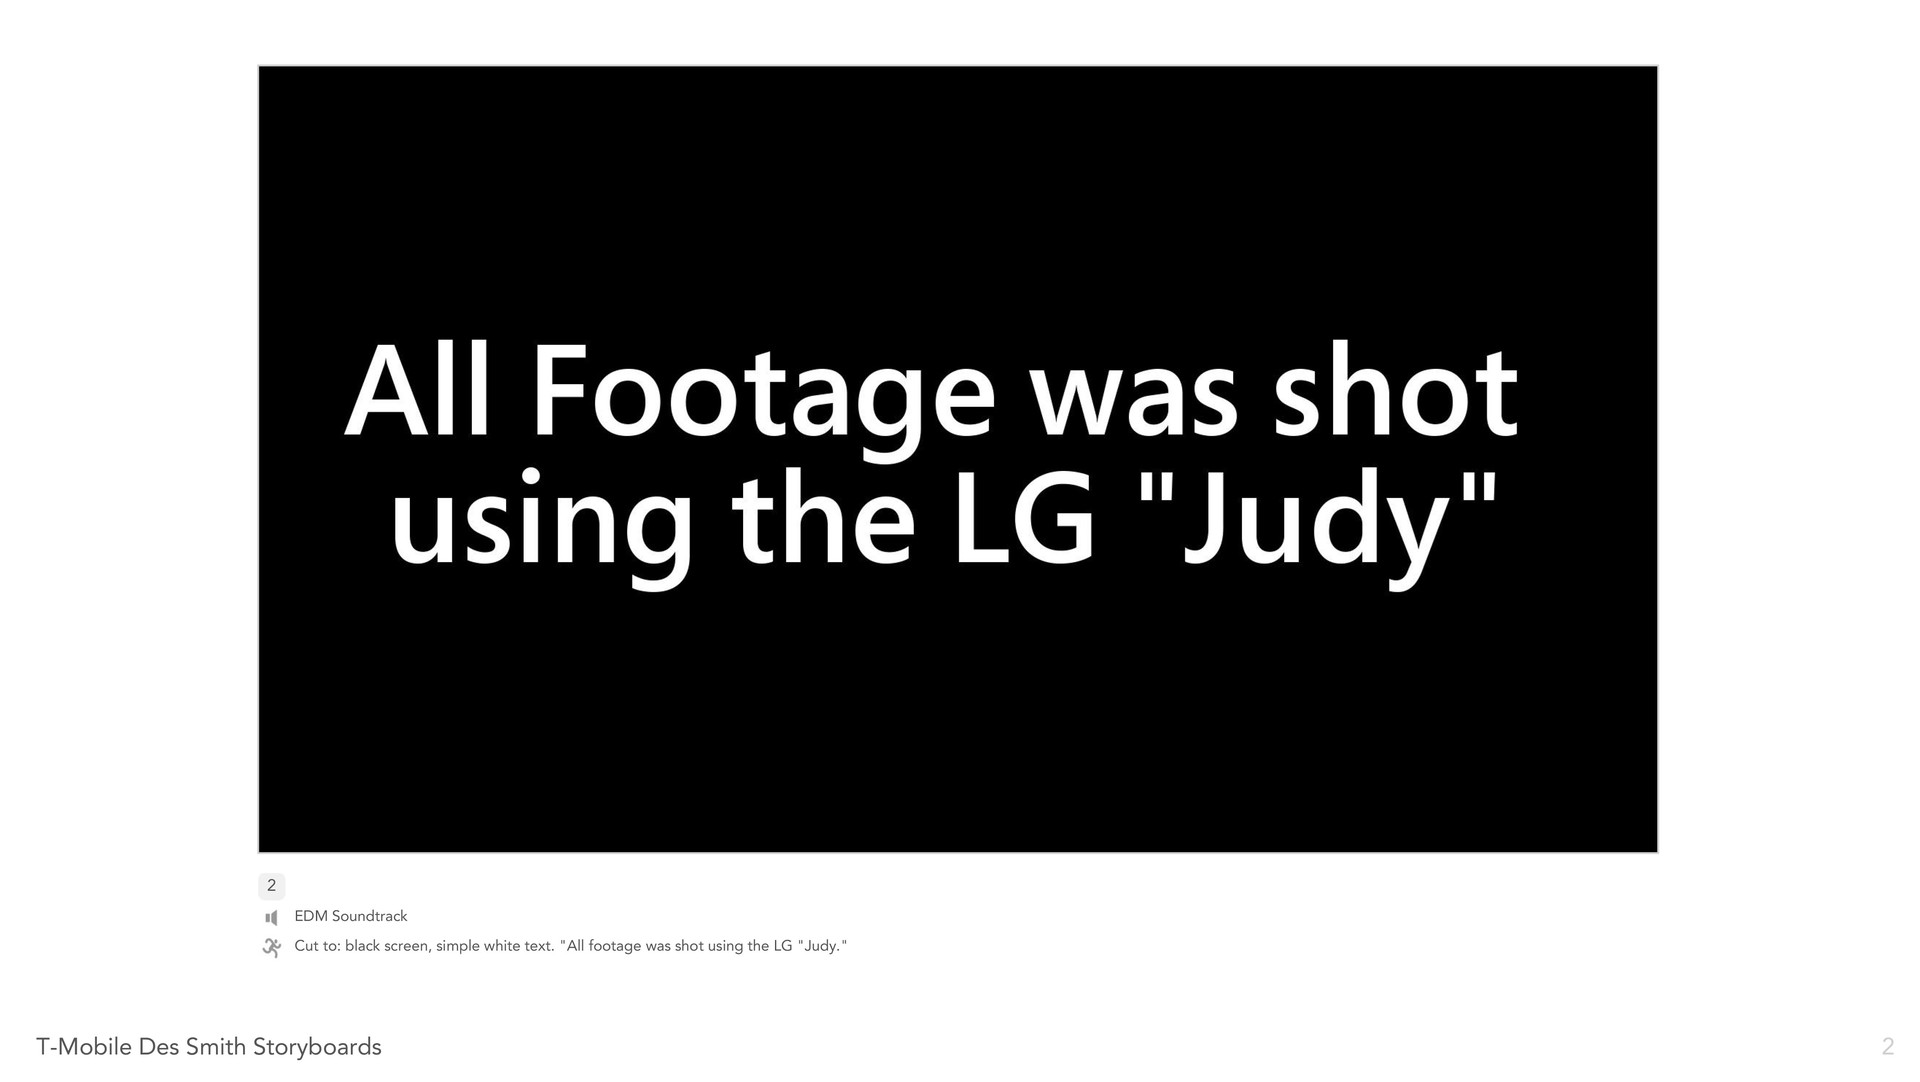 Chx welch t mobile lgjudy unboxing storyboards 3